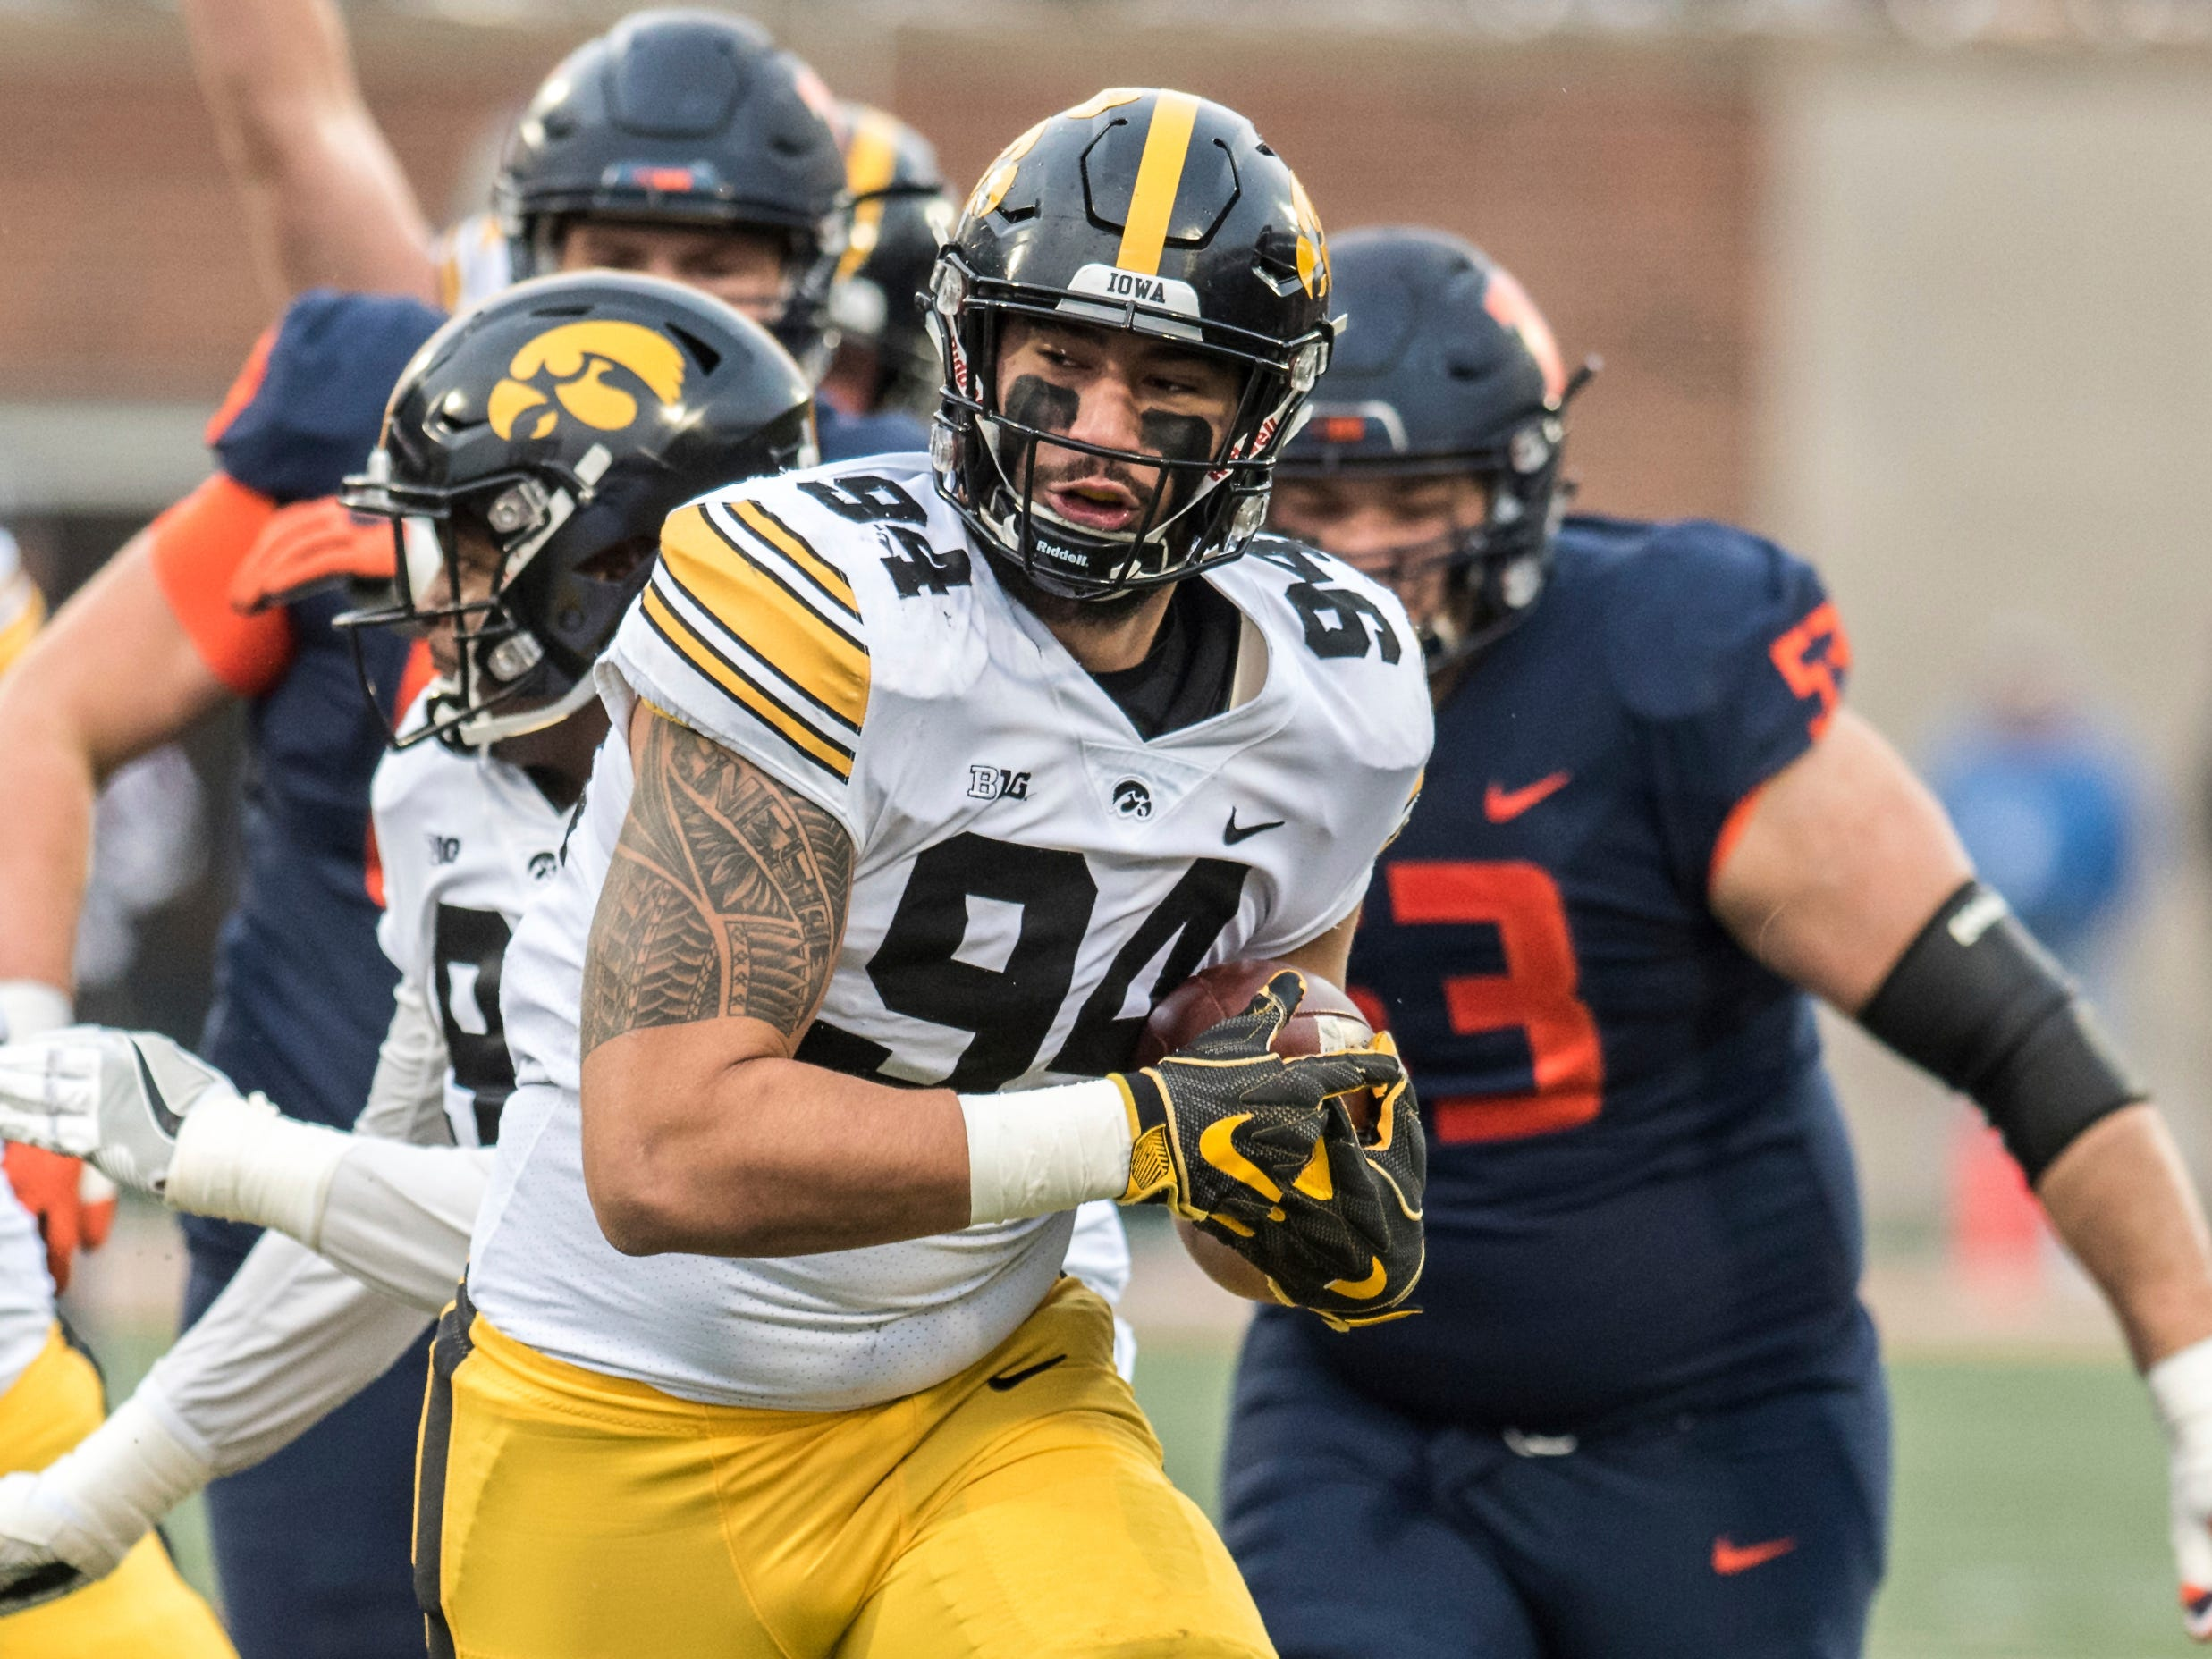 Iowa's A.J. Epenesa (94) runs the ball into the end zone after recovering a fumble in the first half of a NCAA college football game against Illinois, Saturday, Nov. 17, 2018, in Champaign, Ill.